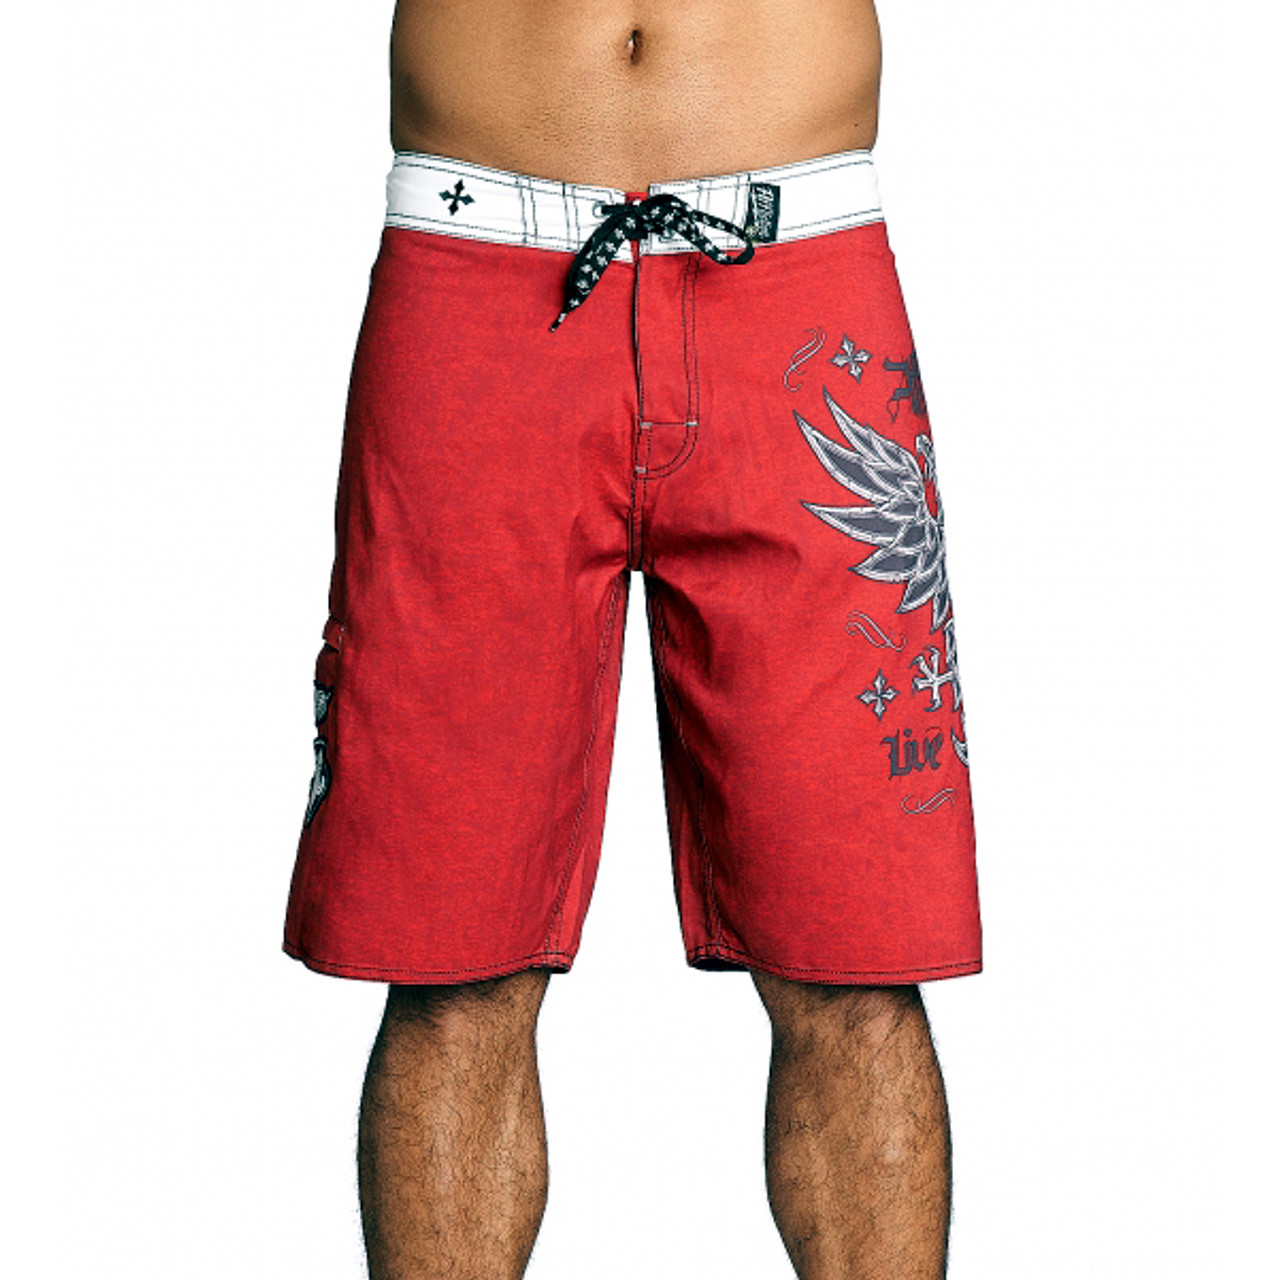 777bf2e958 Affliction Men's Royale Rust Board Shorts Red 101BS101 - HAS Style